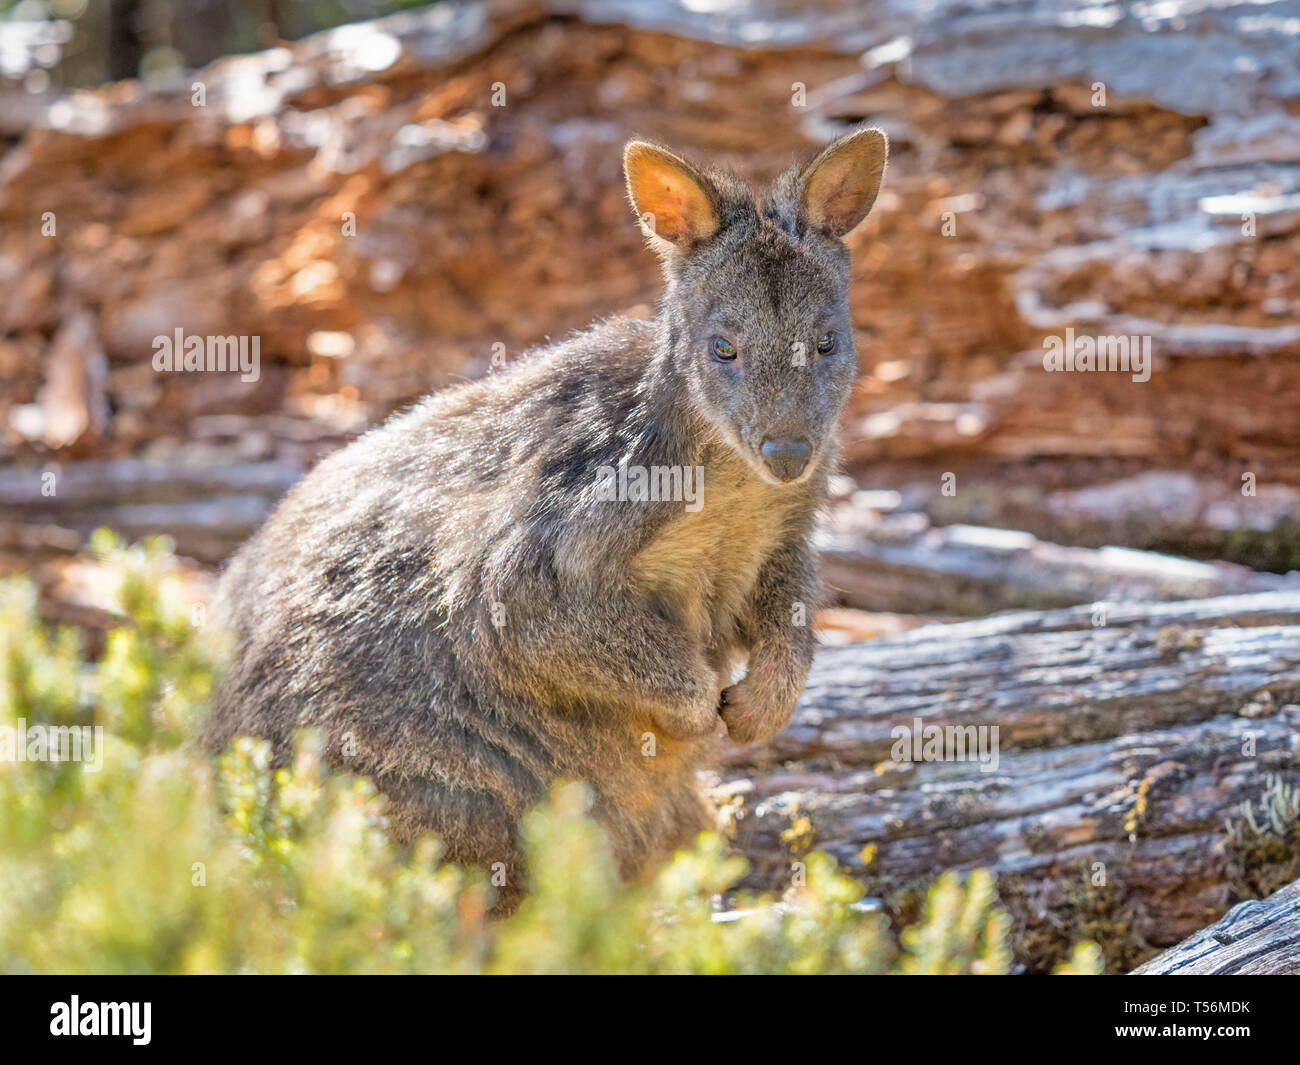 A wallaby in Cradle Mountain - Lake St Clair National Park in Tasmania, Australia. Stock Photo